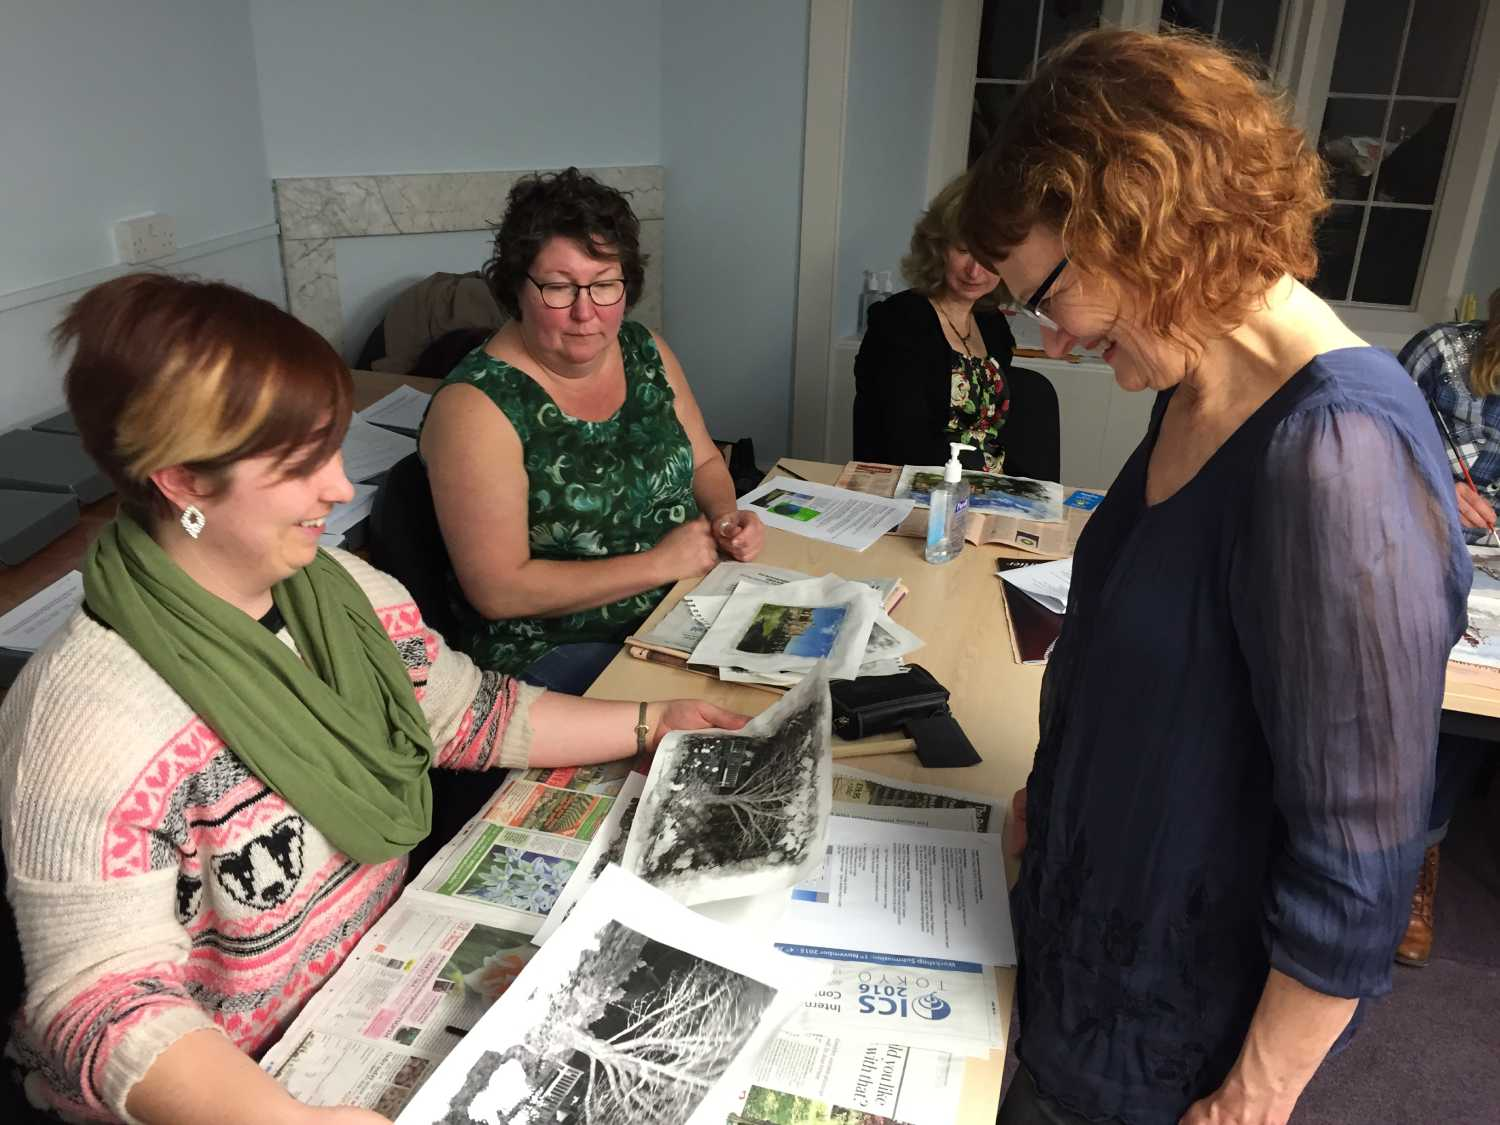 Bookmaking class with Susan kae Grant